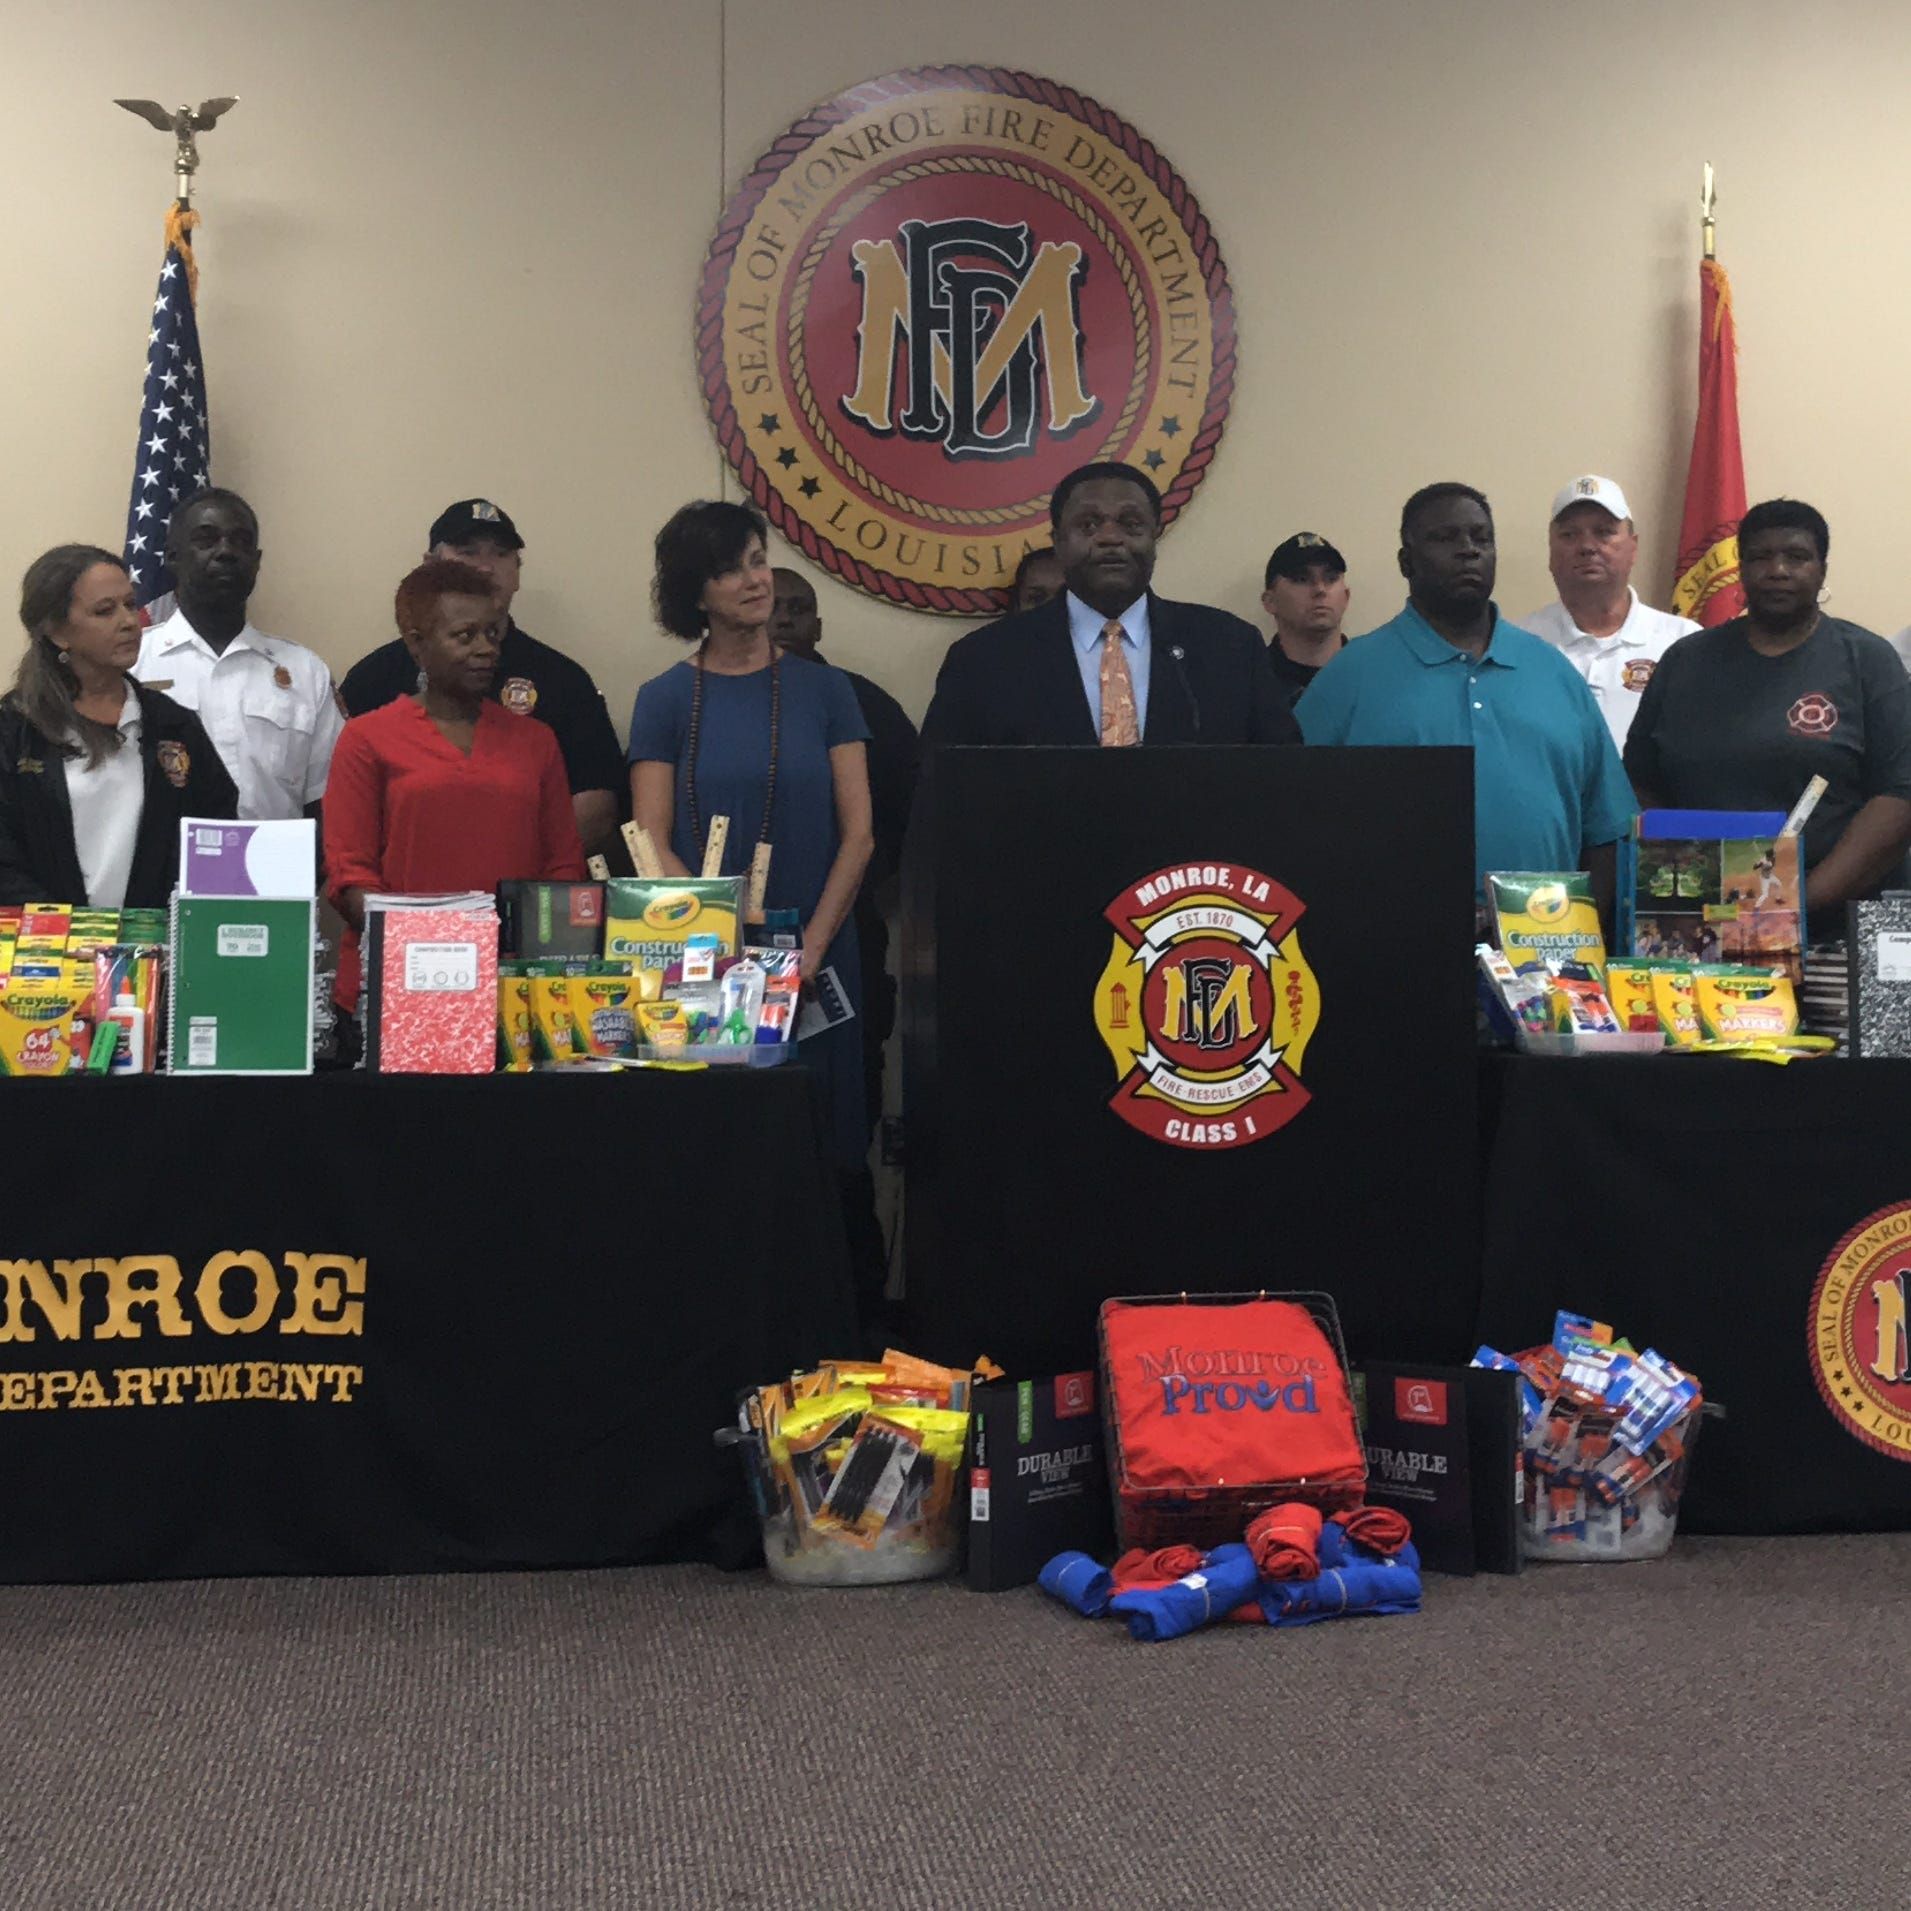 Members of the Monroe Fire Department organized a school supply drive featuring contributions from employees across the city.